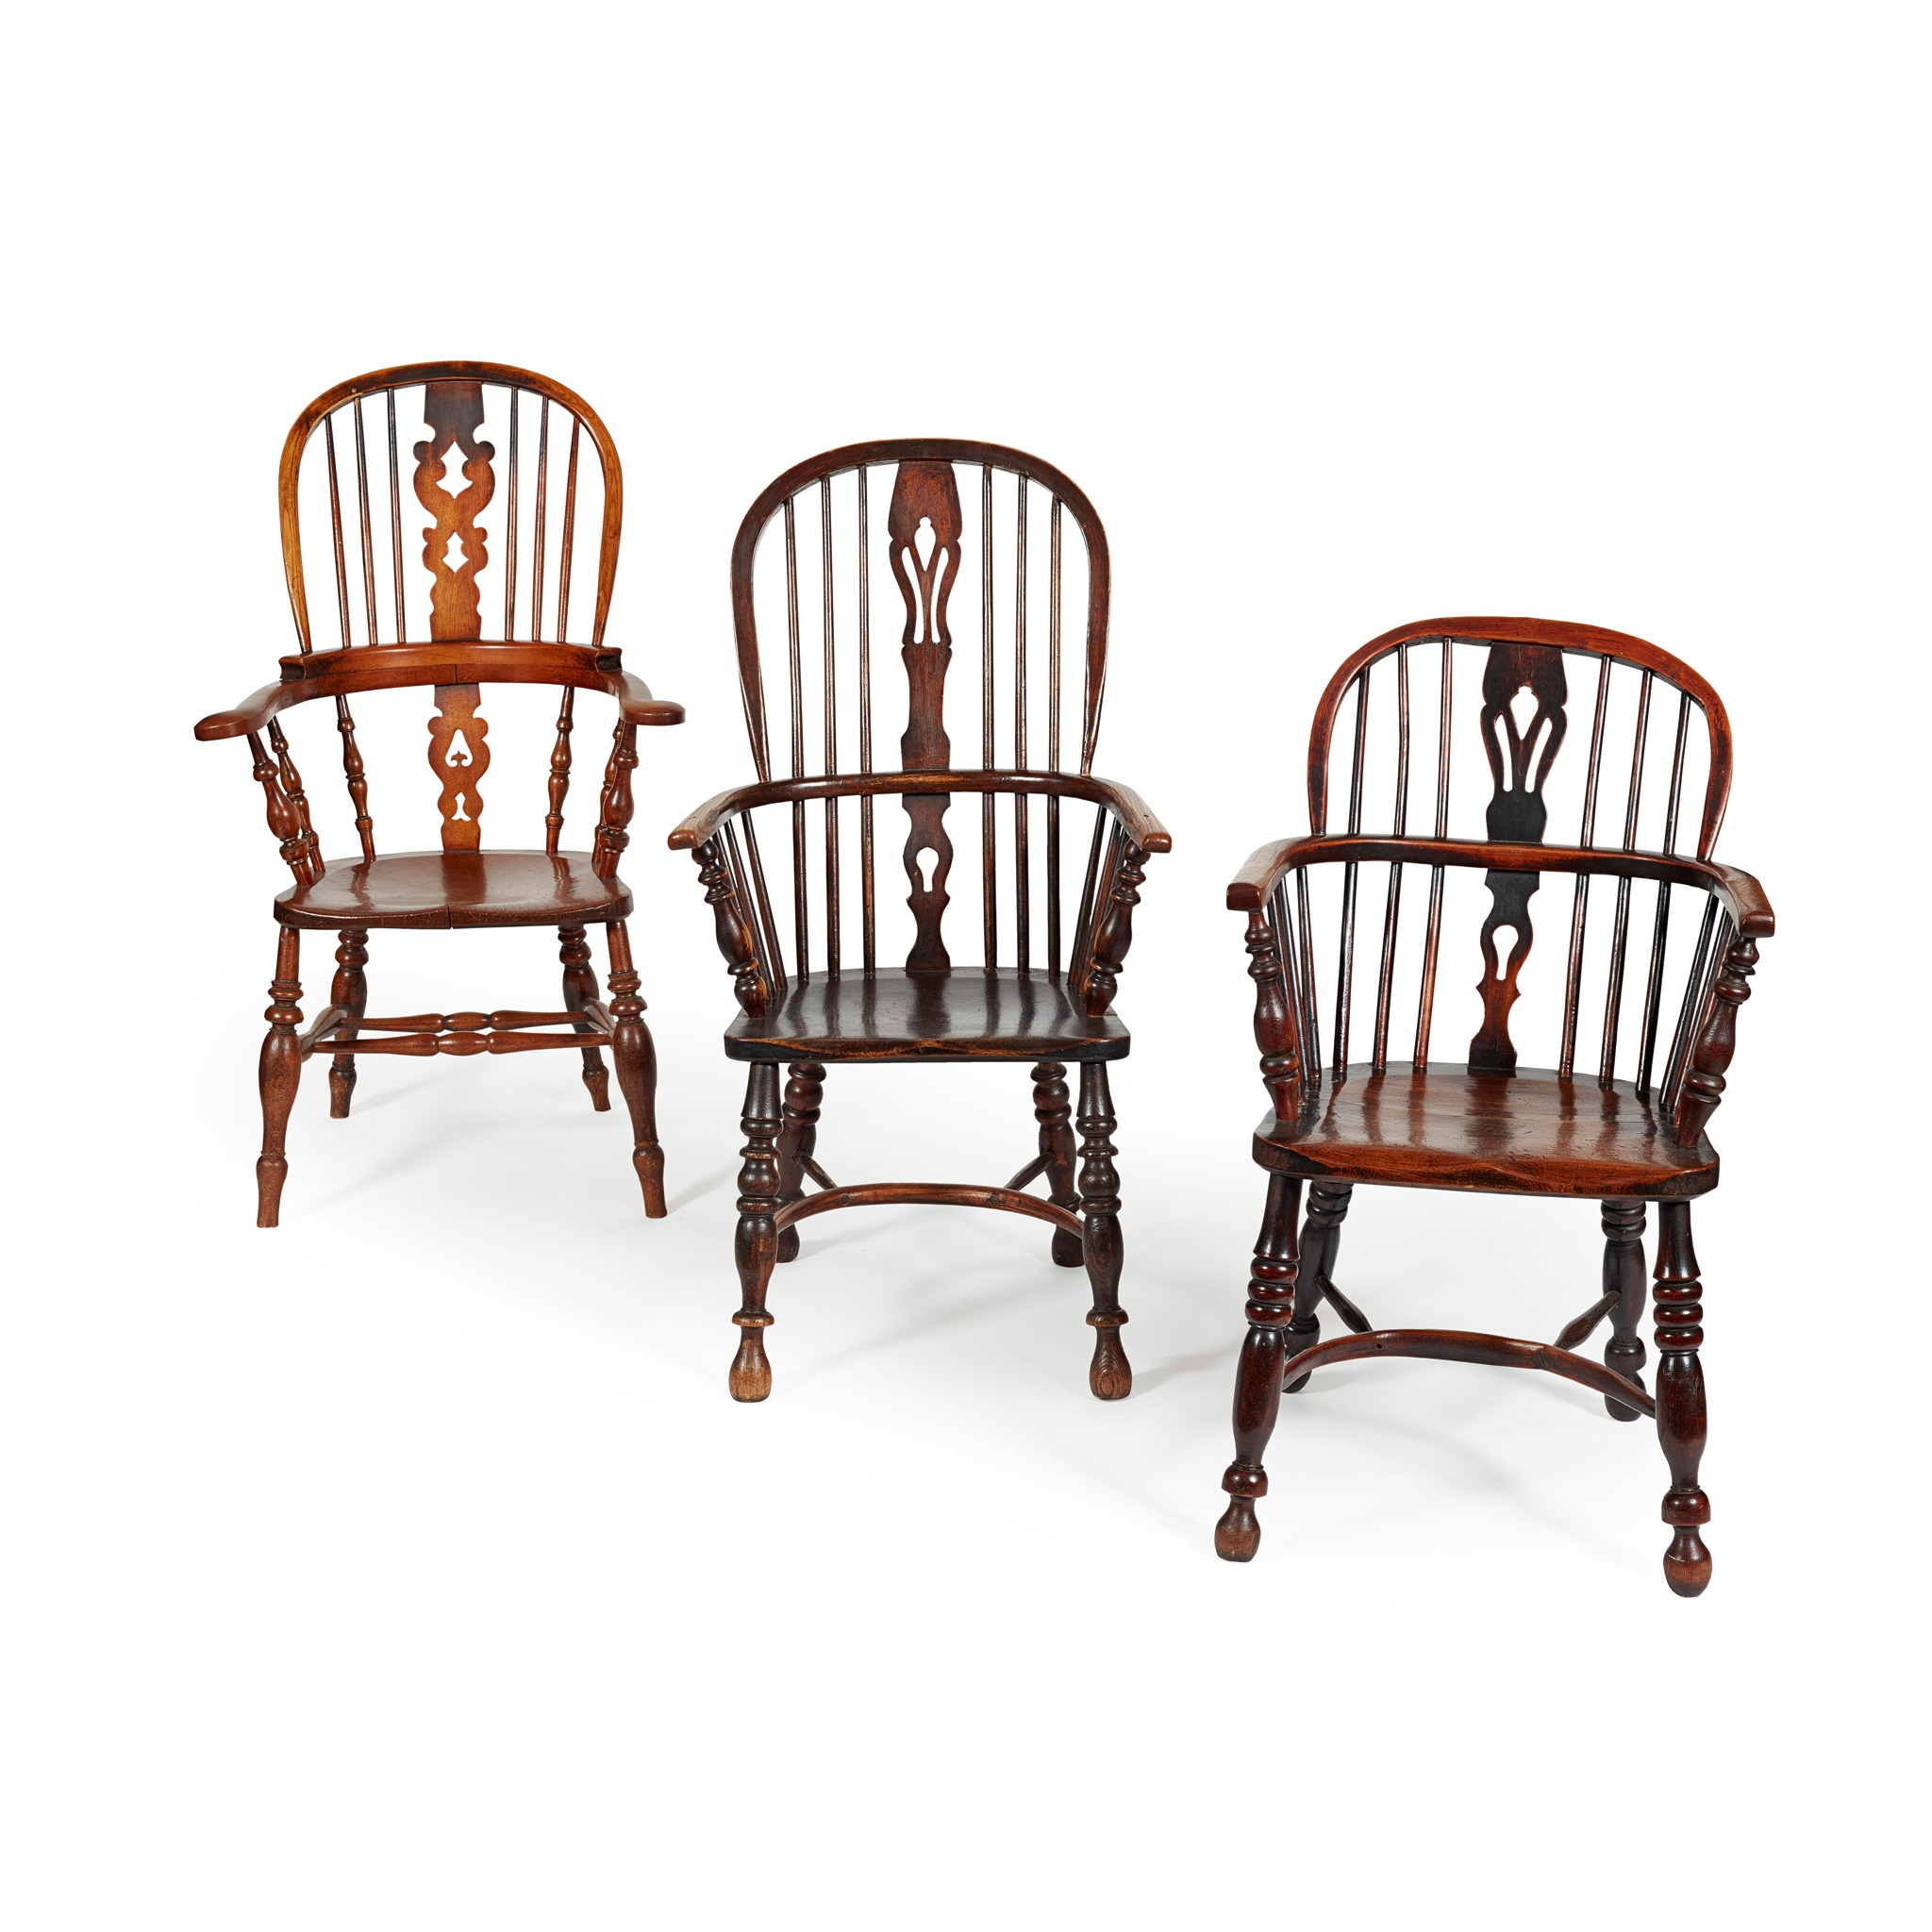 THREE ASH AND ELM WINDSOR CHAIRS 19TH CENTURY